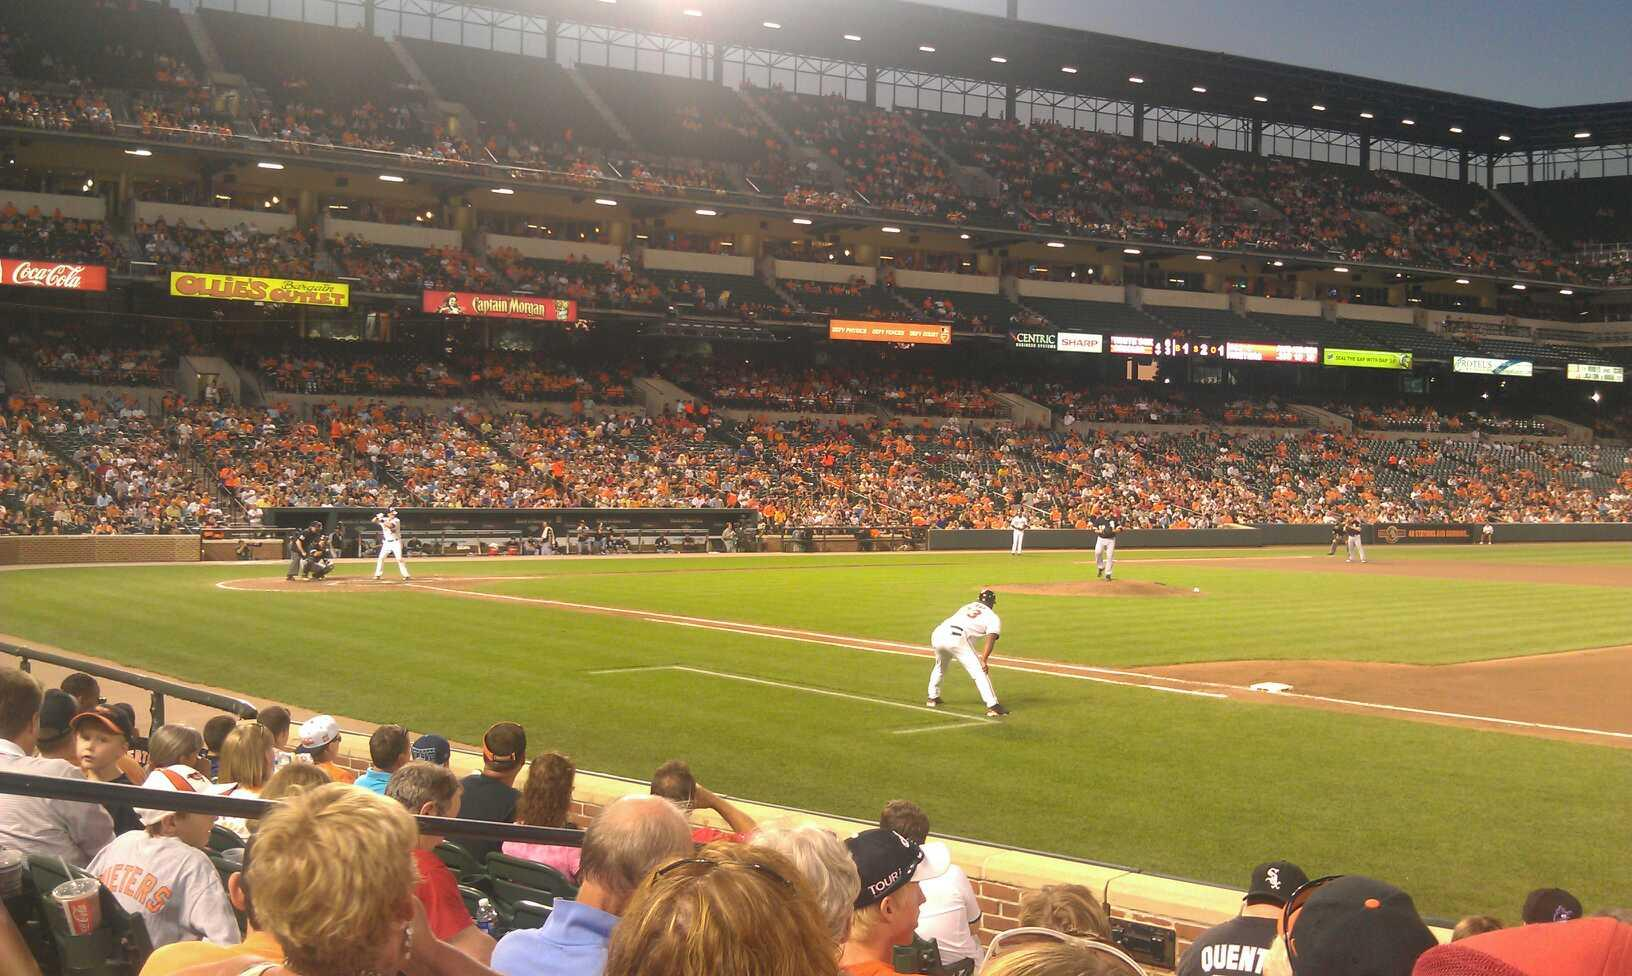 Oriole Park at Camden Yards Section 16 Row 8 Seat 12